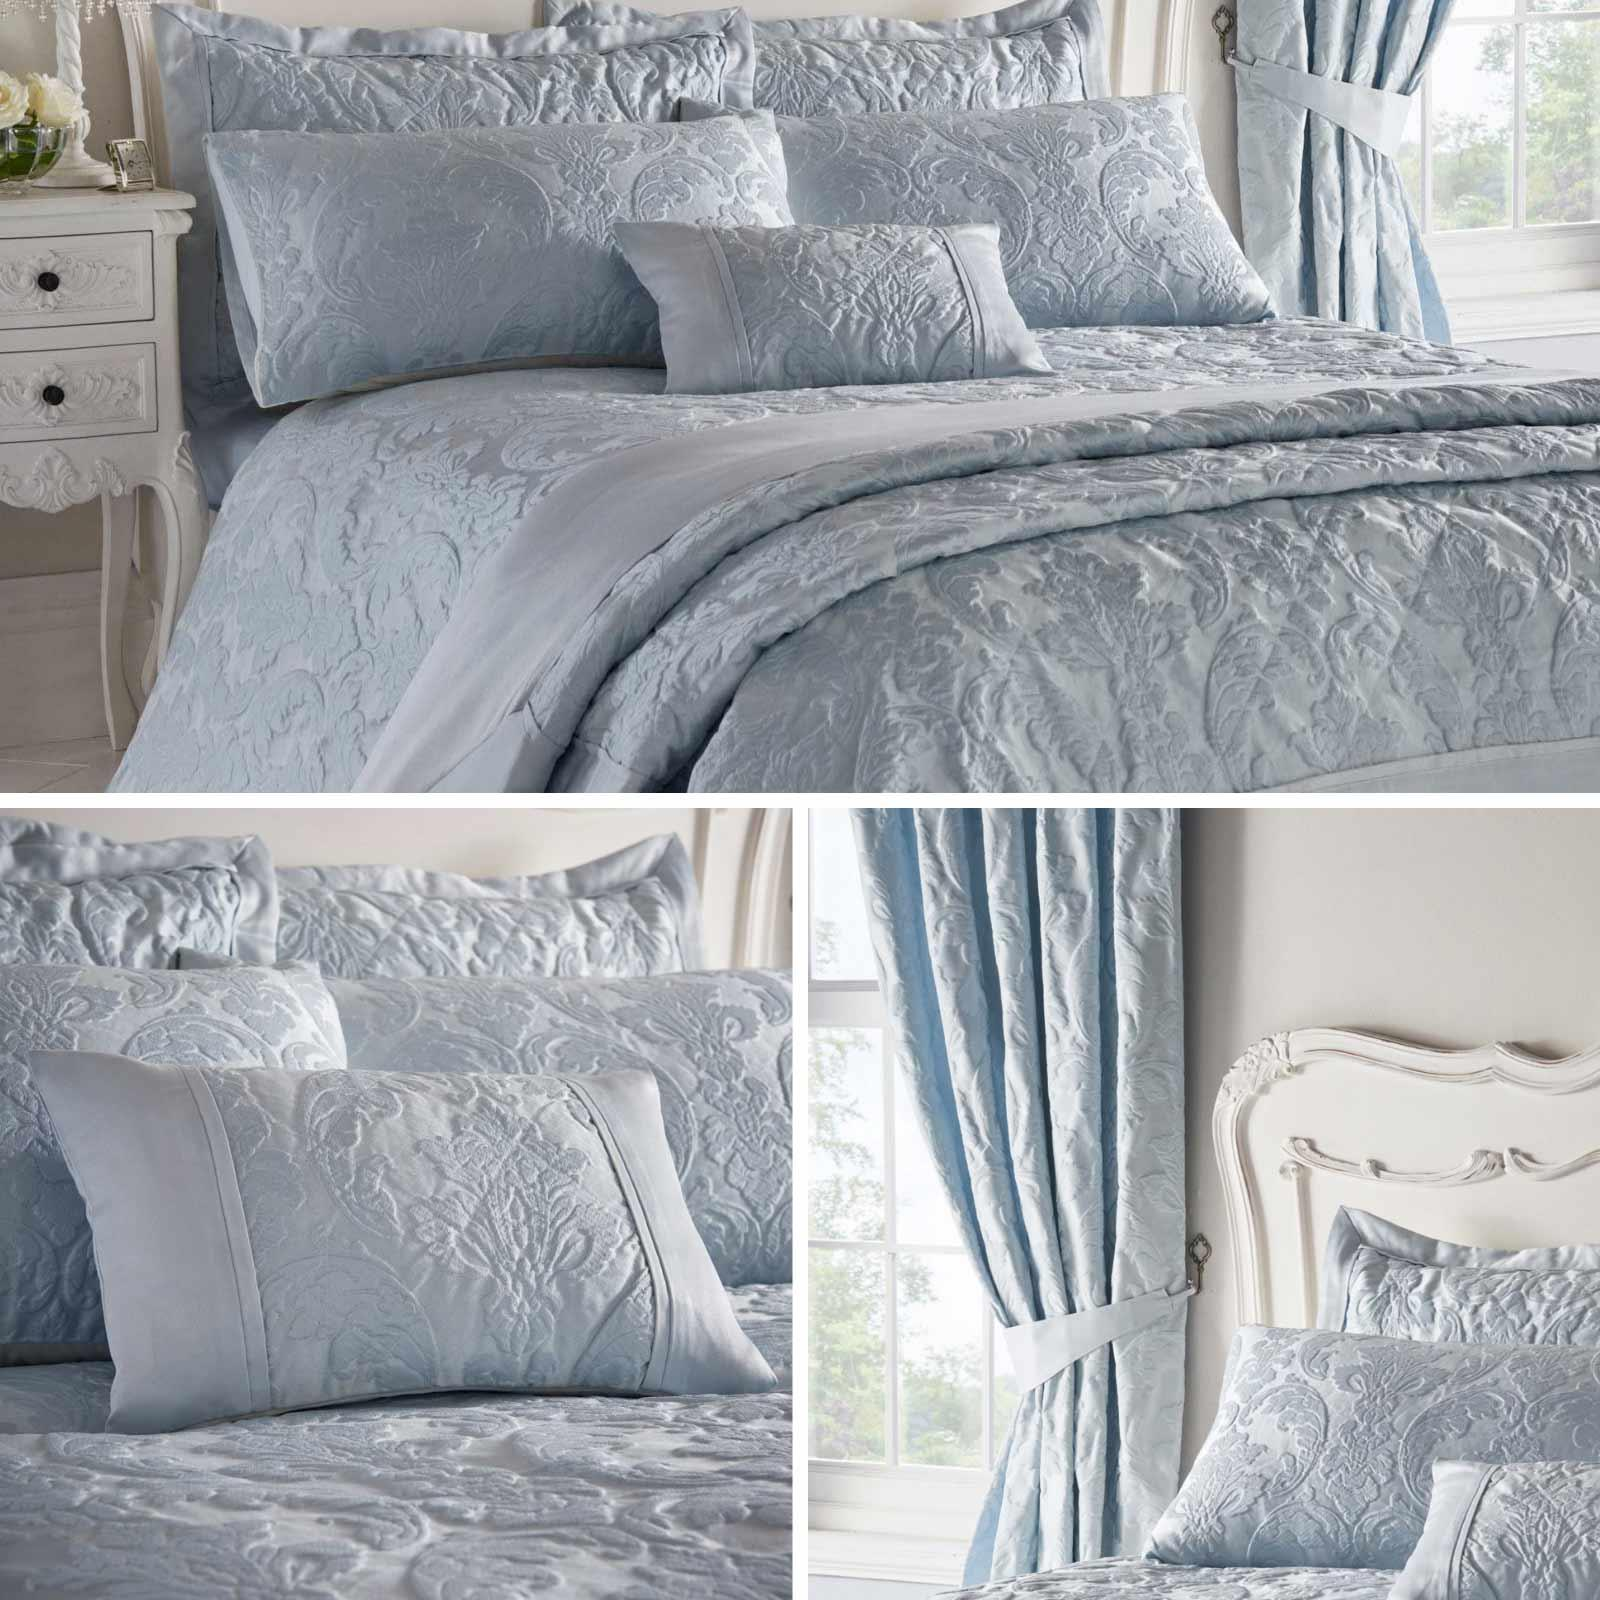 Blue Duvet Covers Damask Textured Jacquard Quilt Sets Luxury Bedding Collection Ebay